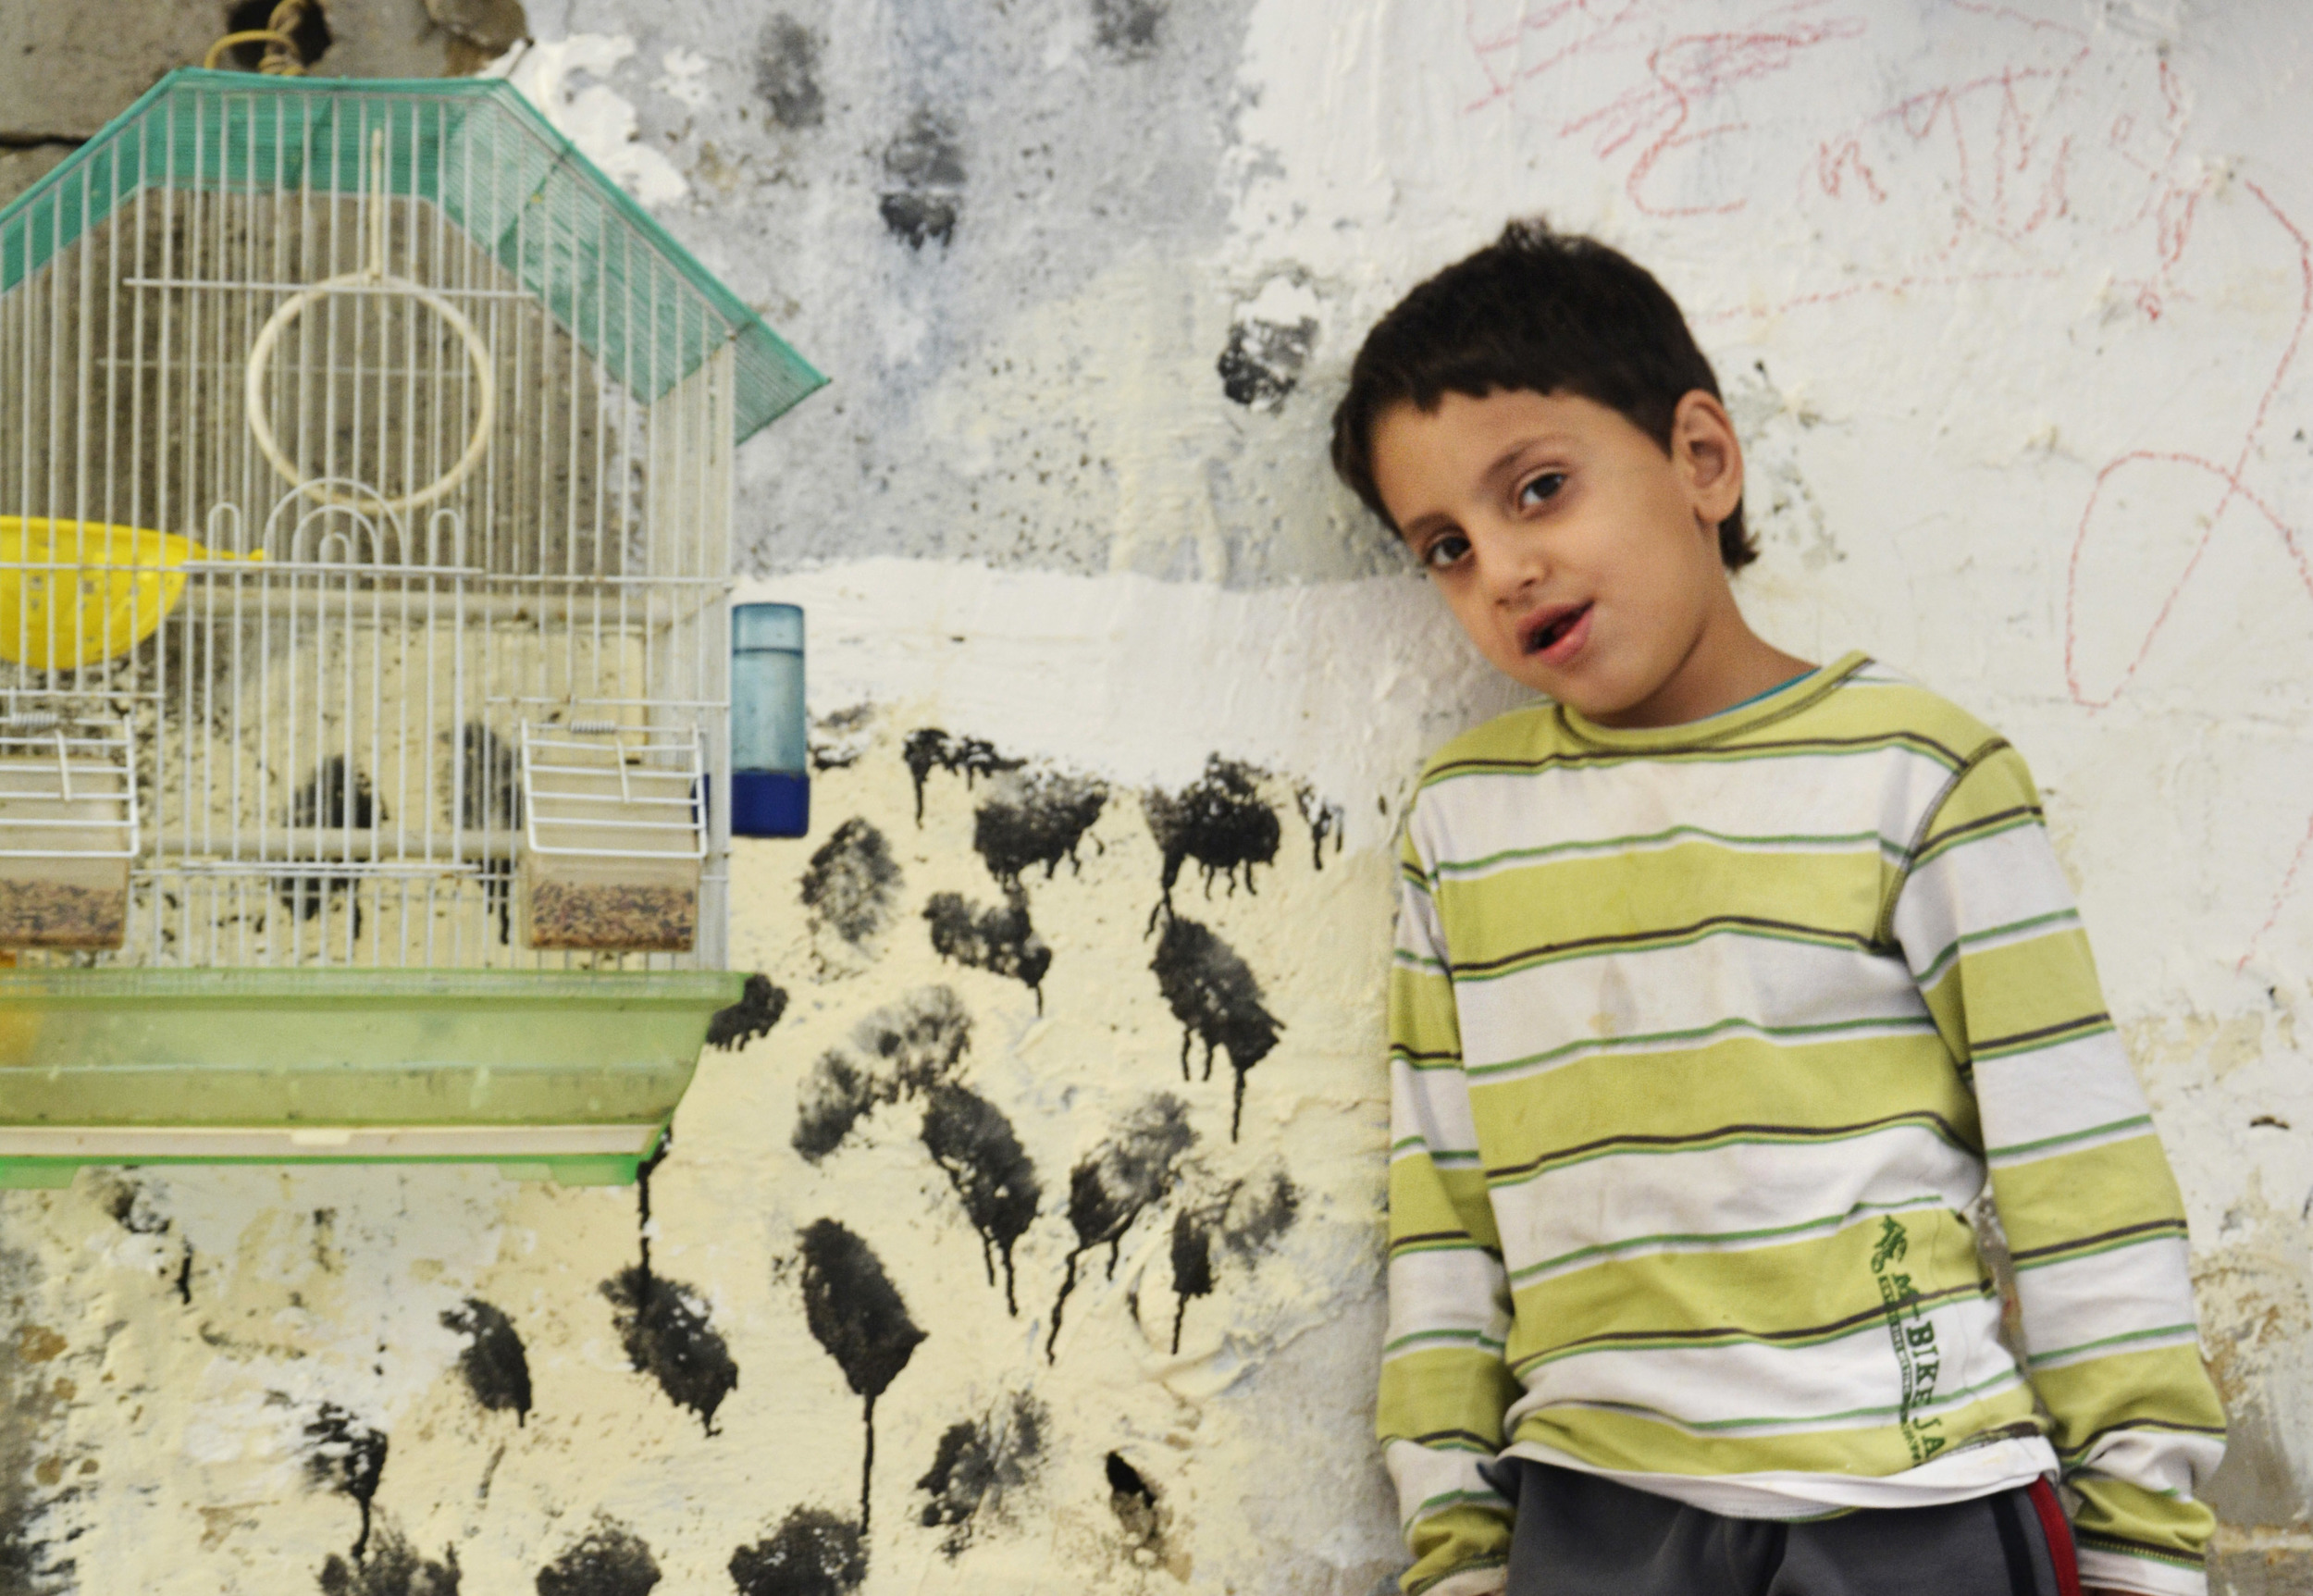 """Hassan Basyouni, 12, Palestinian-Syrian, stands by his pet bird. """"Back in Syria, we had a lot of birds,"""" his father said, smiling weakly, """"I try to get some to keep him happy."""""""